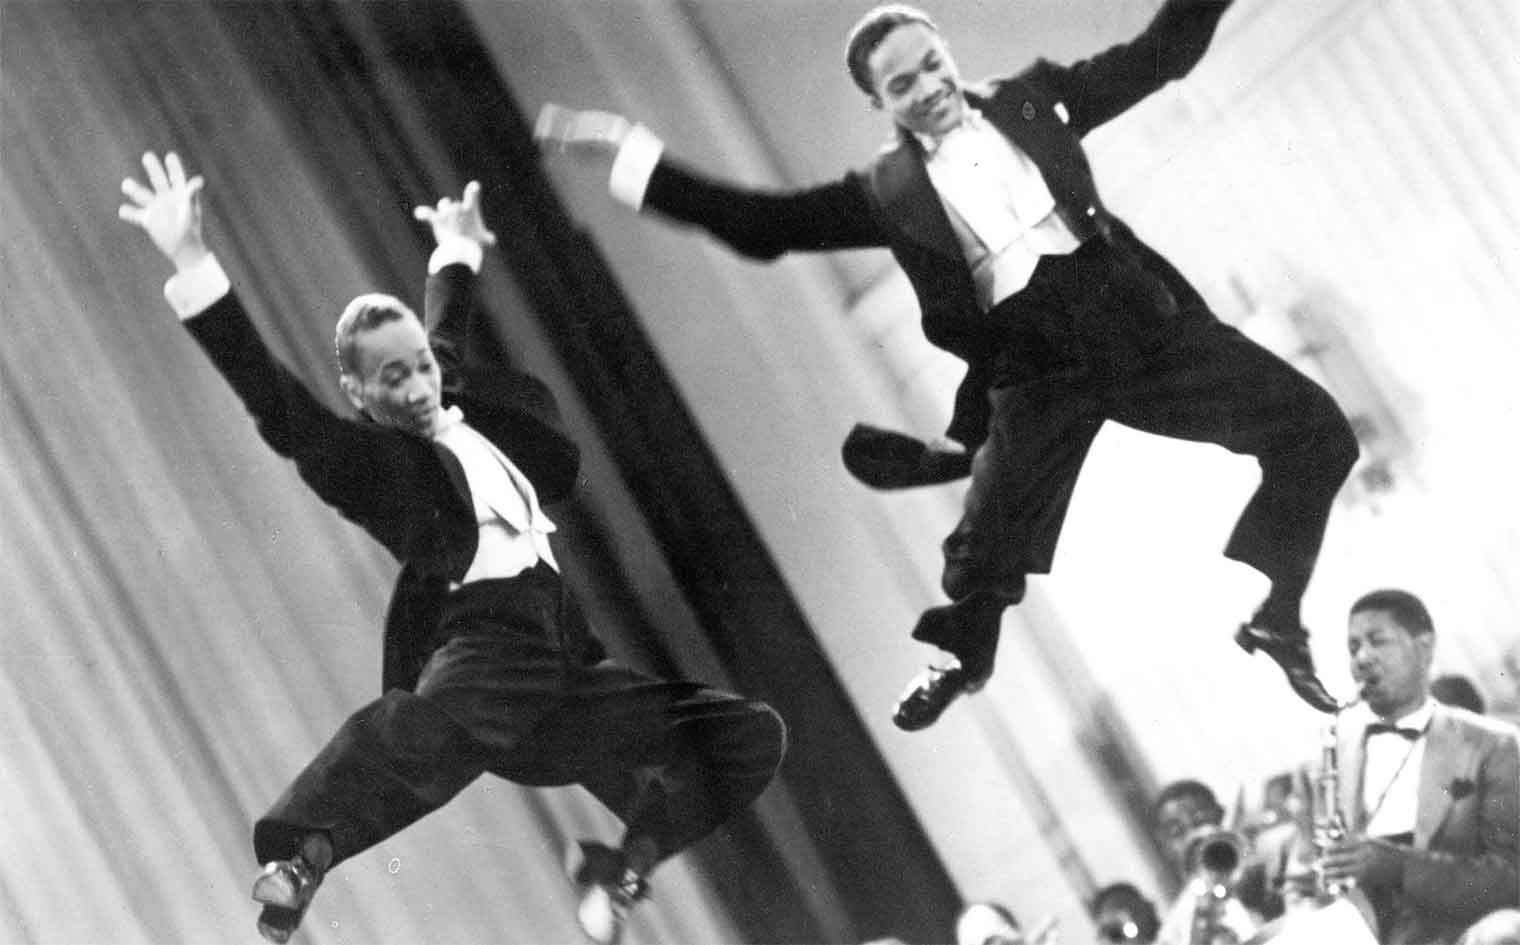 THE FABULOUS NICHOLAS BROTHERS presented by Bruce Goldstein